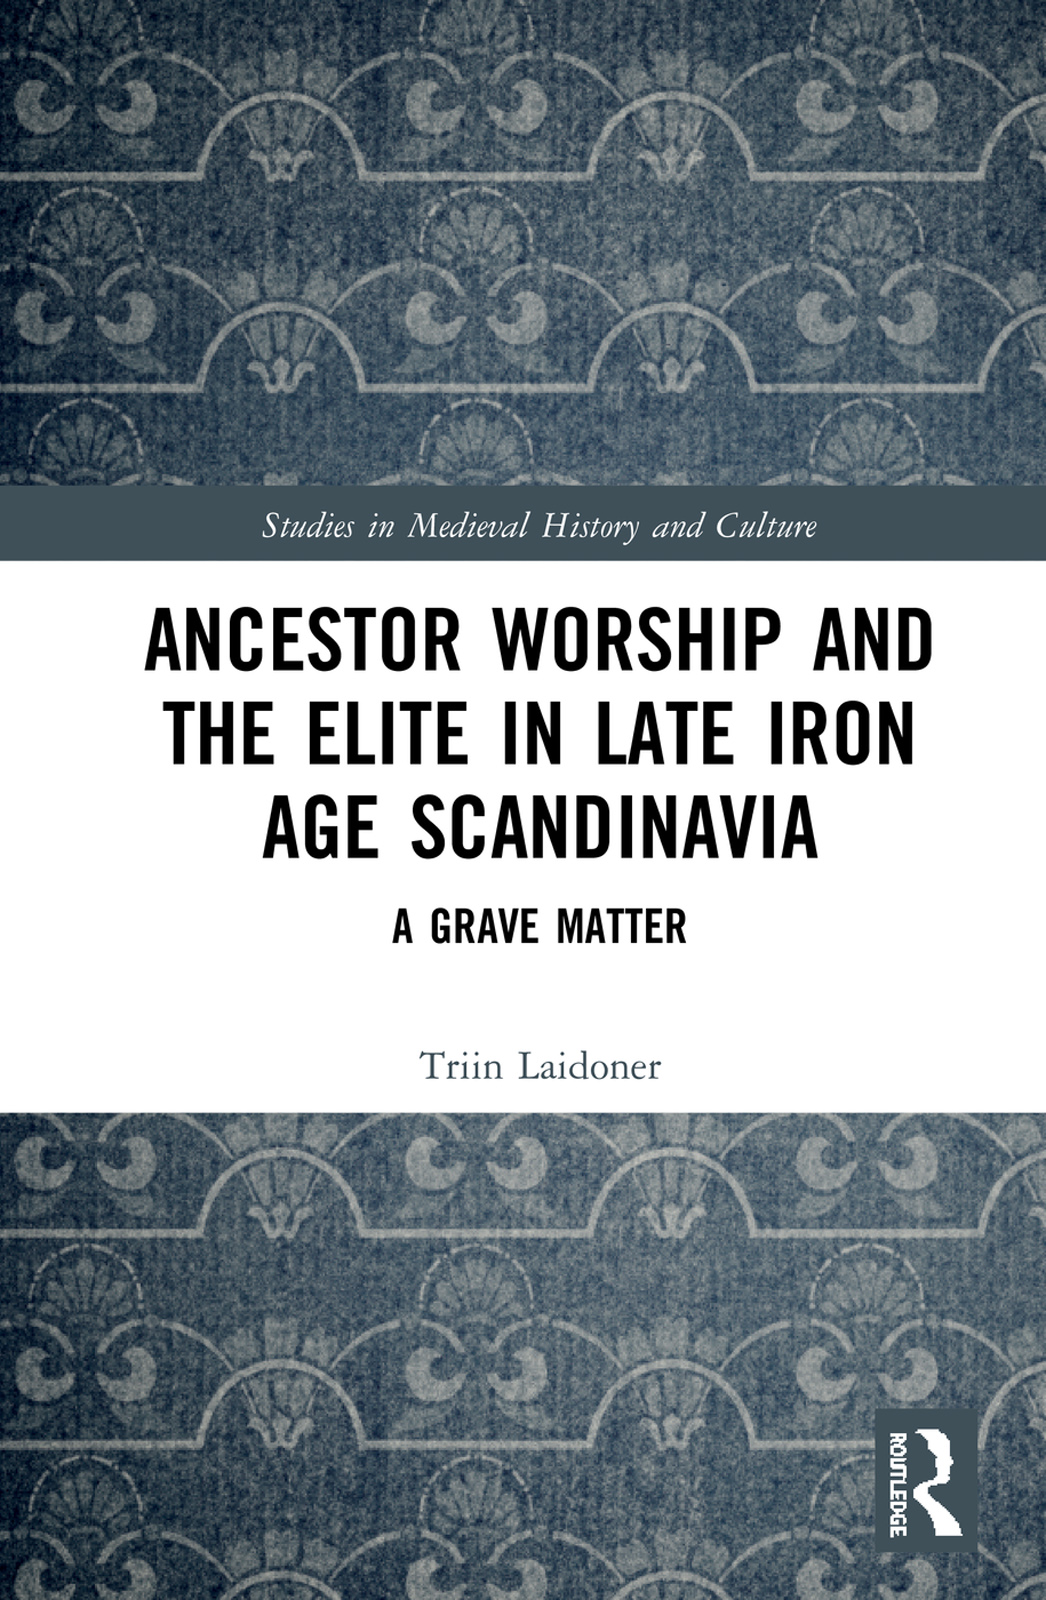 Ancestor Worship and the Elite in Late Iron Age Scandinavia: A Grave Matter book cover